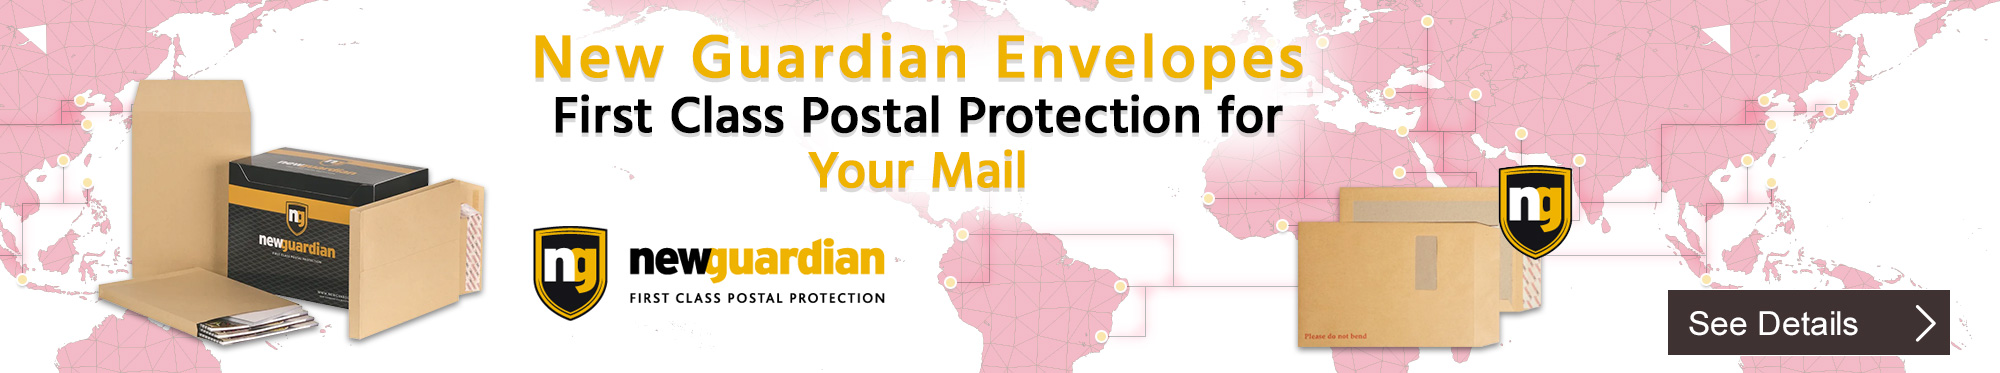 First Class Postal Protection for Your Mail <TAG>FROM</TAG>